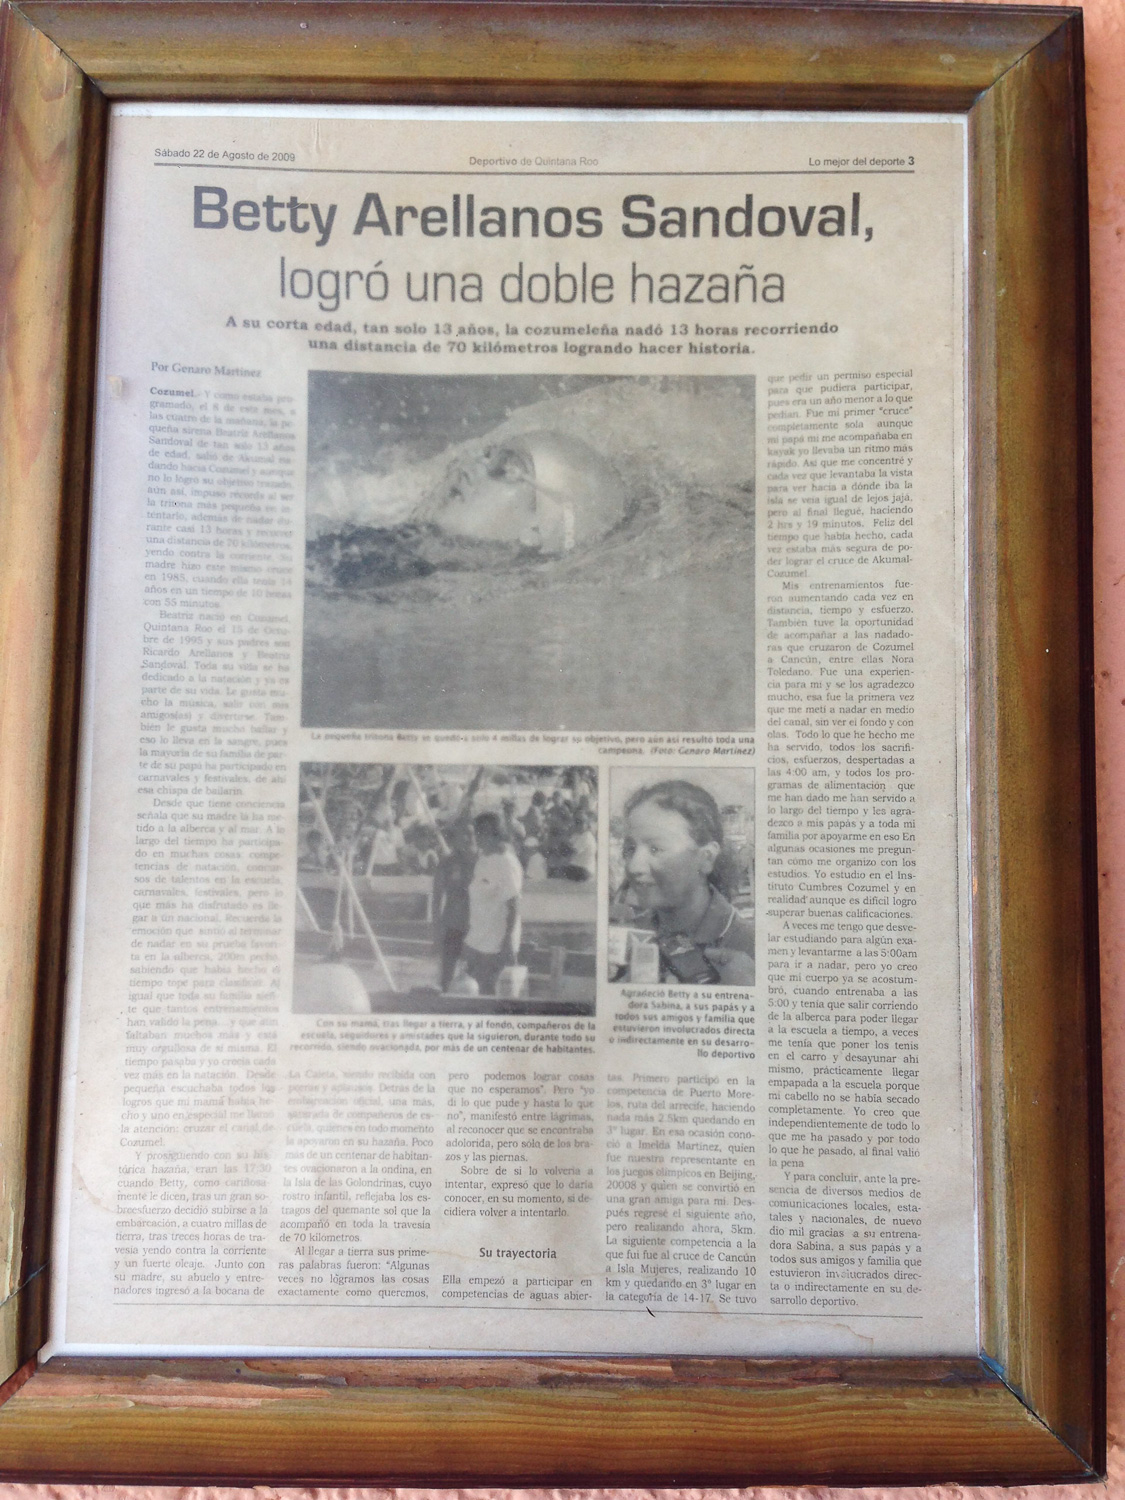 Article on the exploit attempted by Betty Arellanos Sandoval, Sergio's granddaughter.